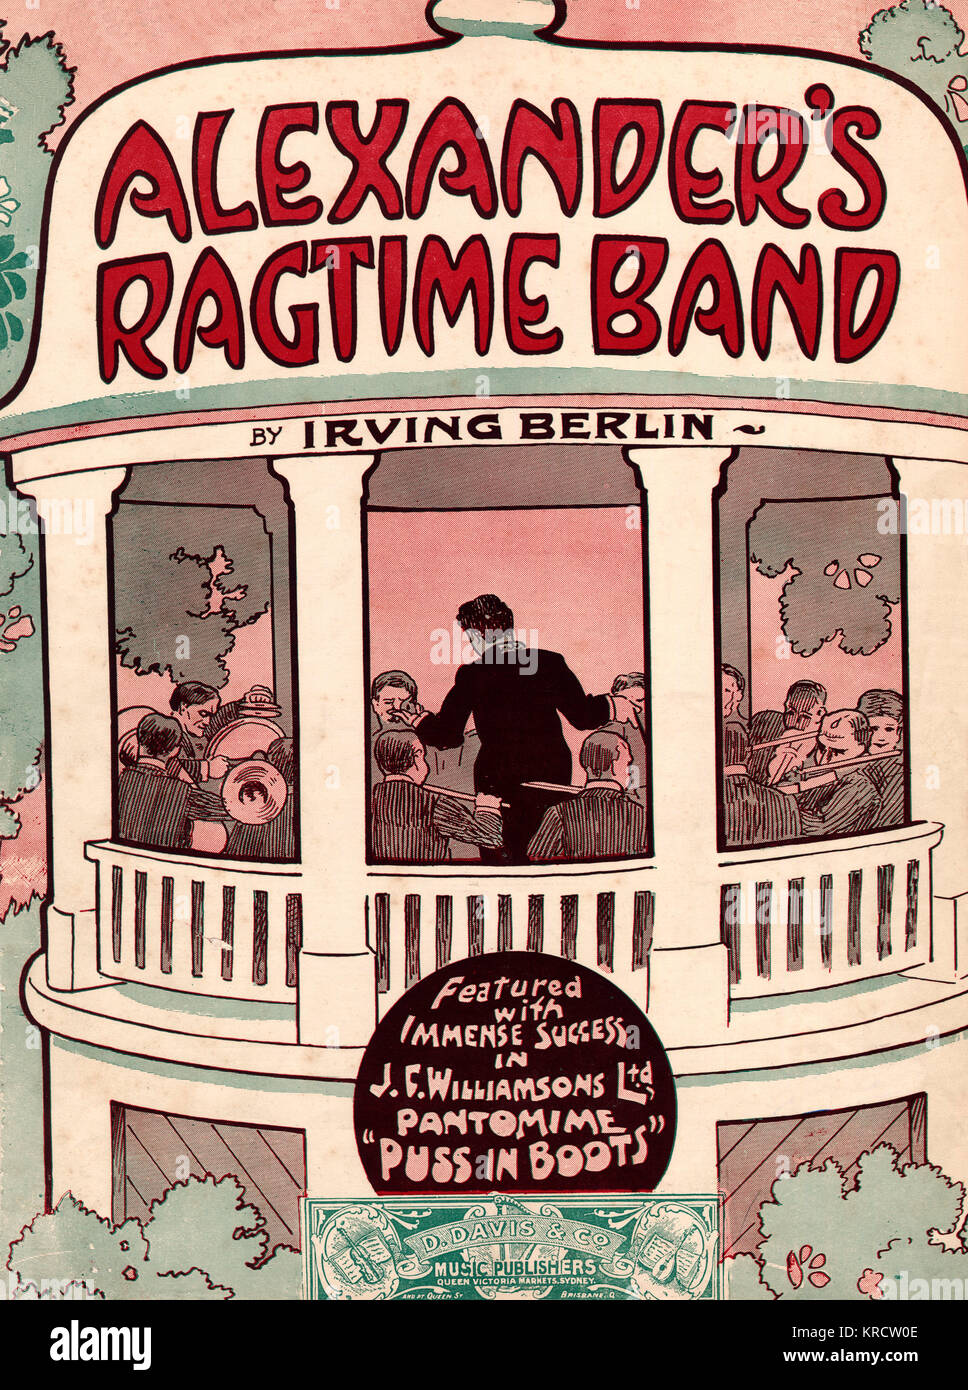 'ALEXANDER'S RAGTIME BAND' A ragtime jazz band in a bandstand; music sheet for the famous song by Irving - Stock Image